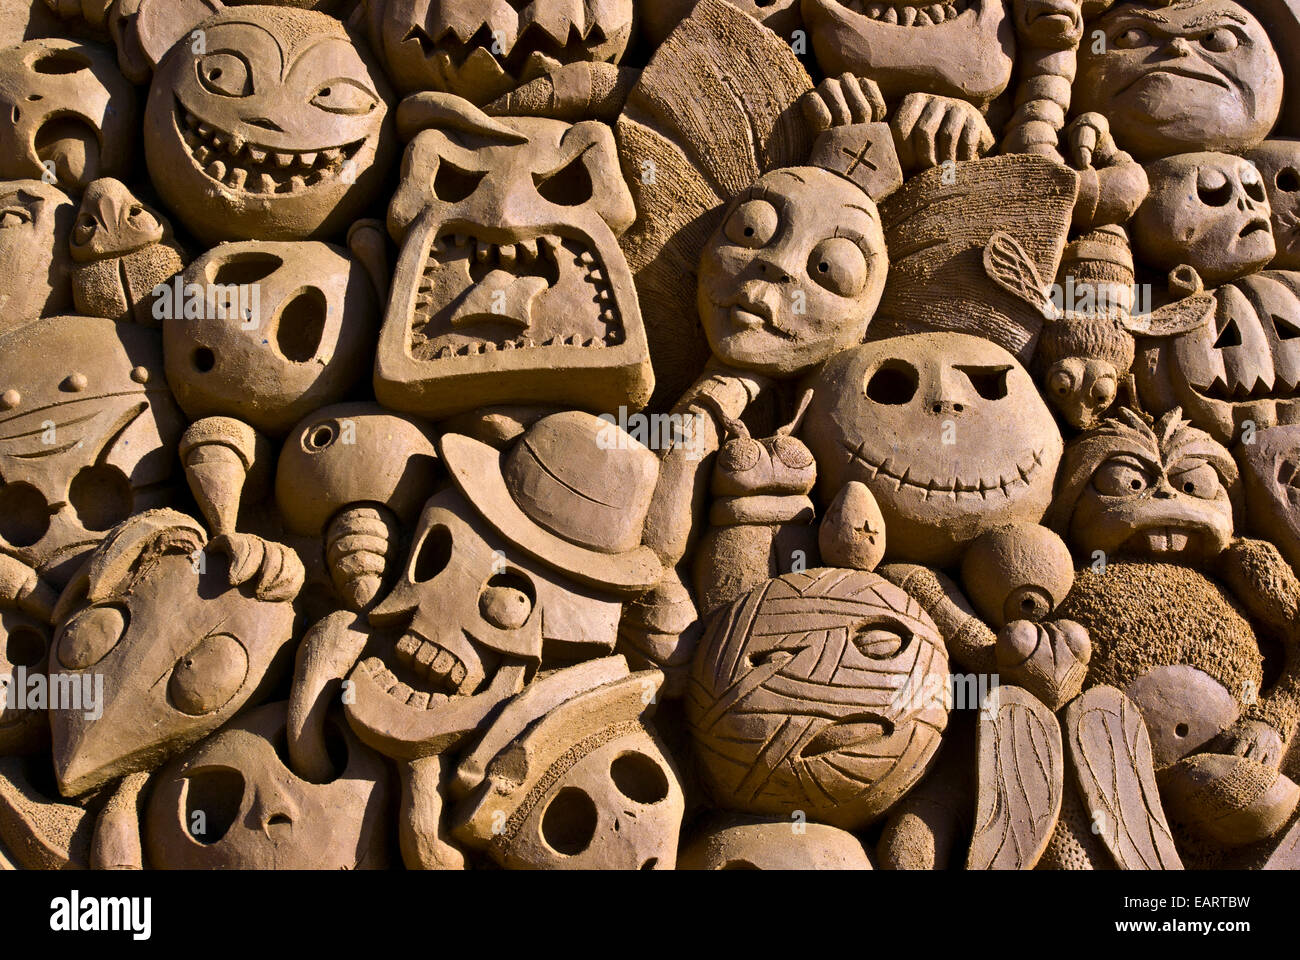 Tim Burton inspired sand sculpture, 'A Closer Look' features death faces. - Stock Image